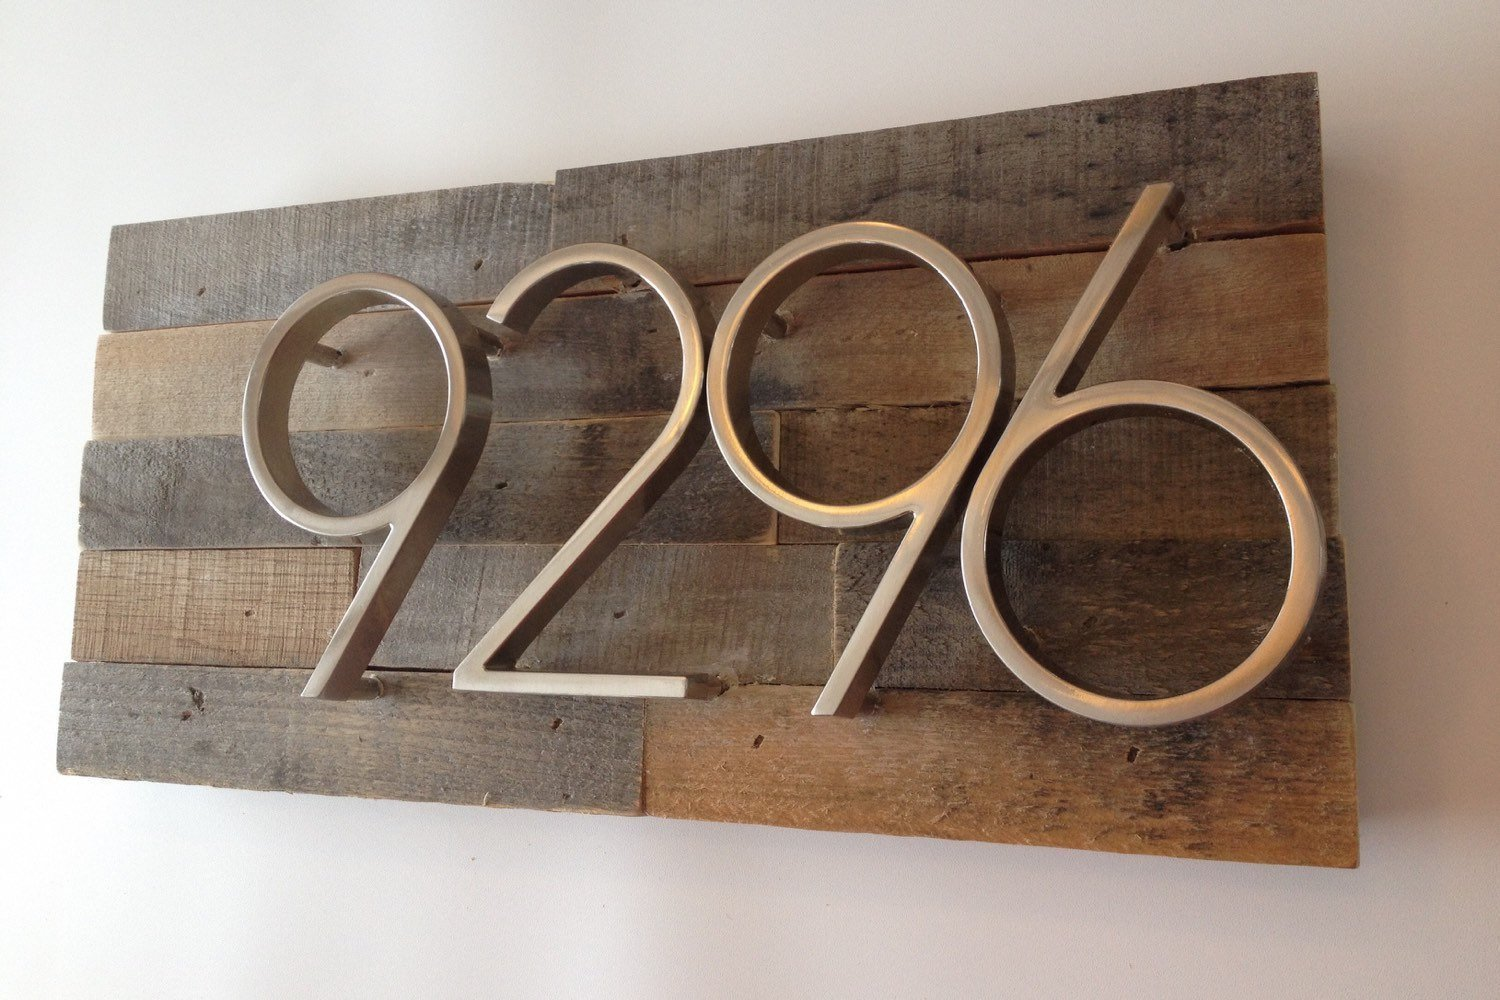 1156282e135c Amazon.com: Reclaimed Wood Address Plaque - Rustic, Reclaimed Wood,  Vintage, Custom, House Numbers, Address Sign: Handmade